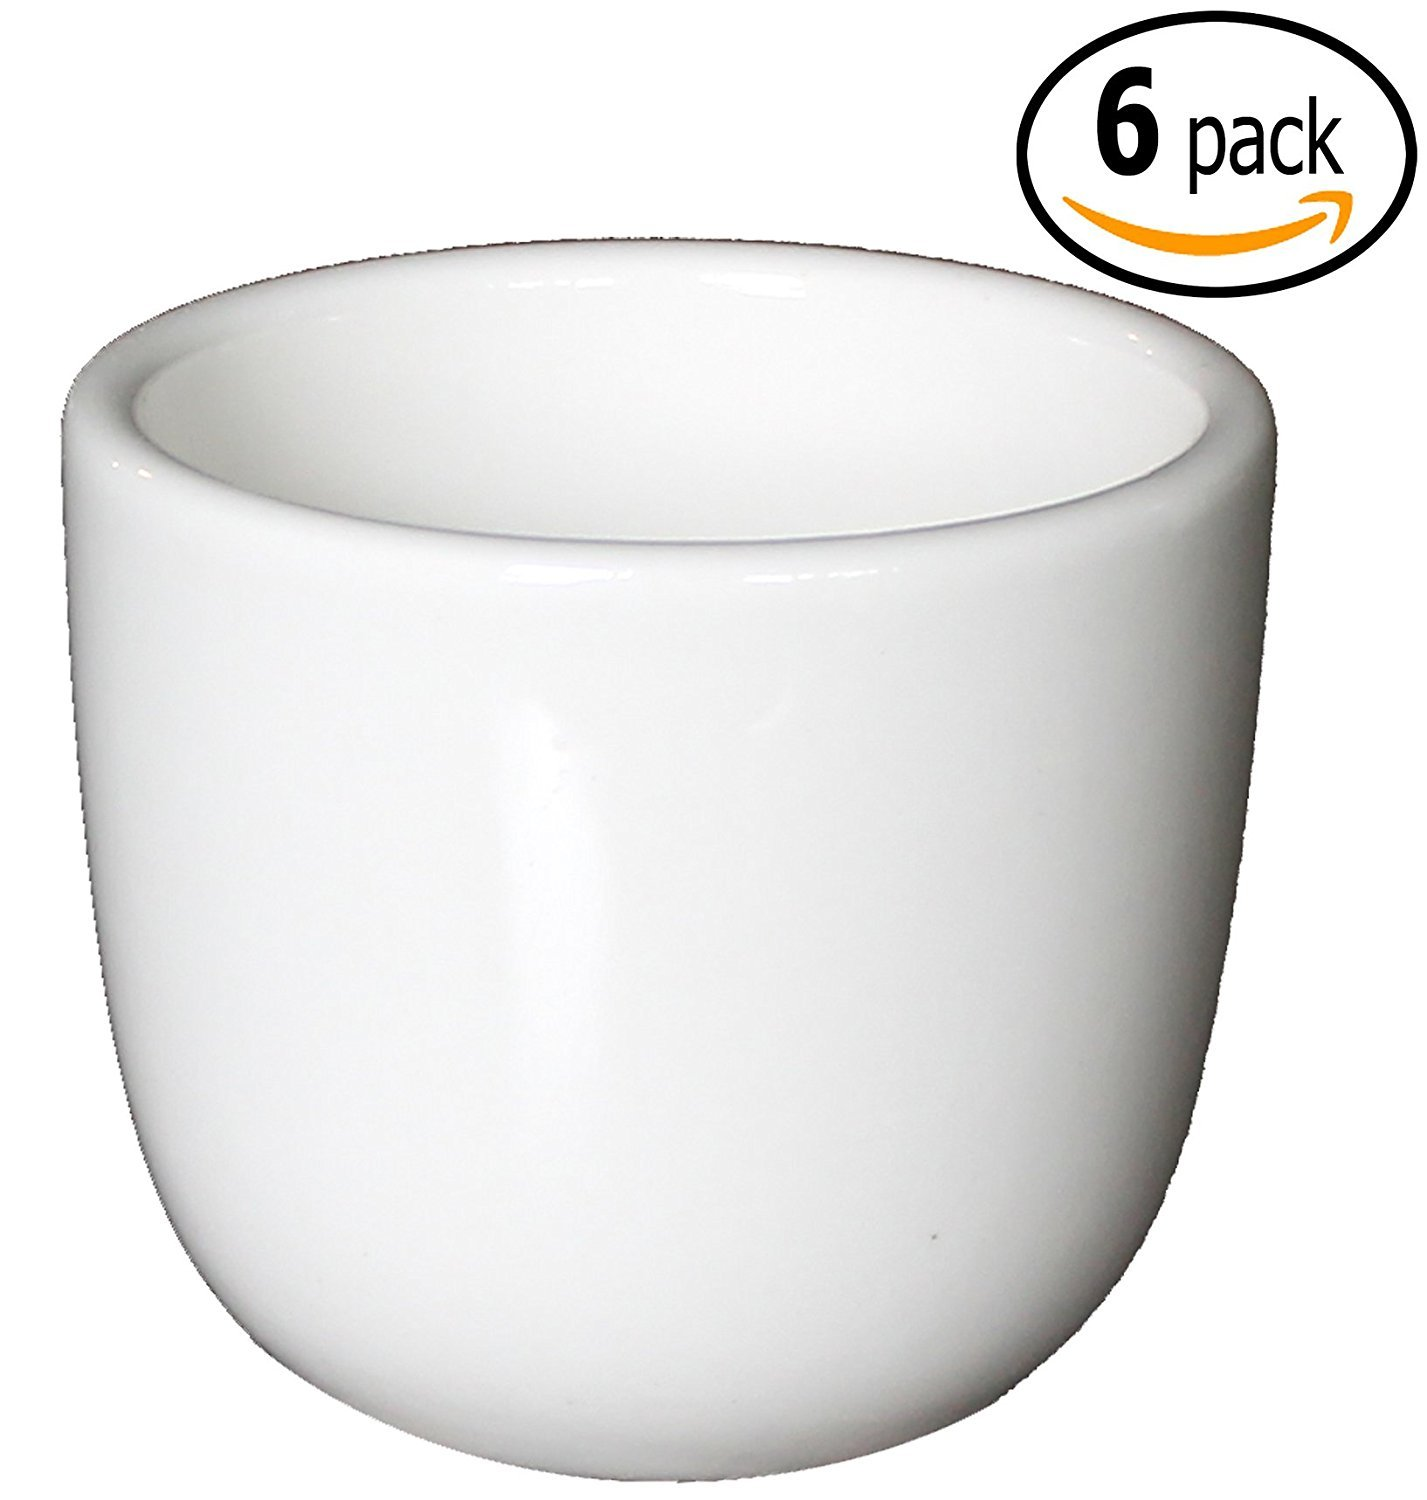 Cameo Ceramic Stackable Teacups with Pan Scraper, White Ivory (6 Pack, 4.5 Ounce)